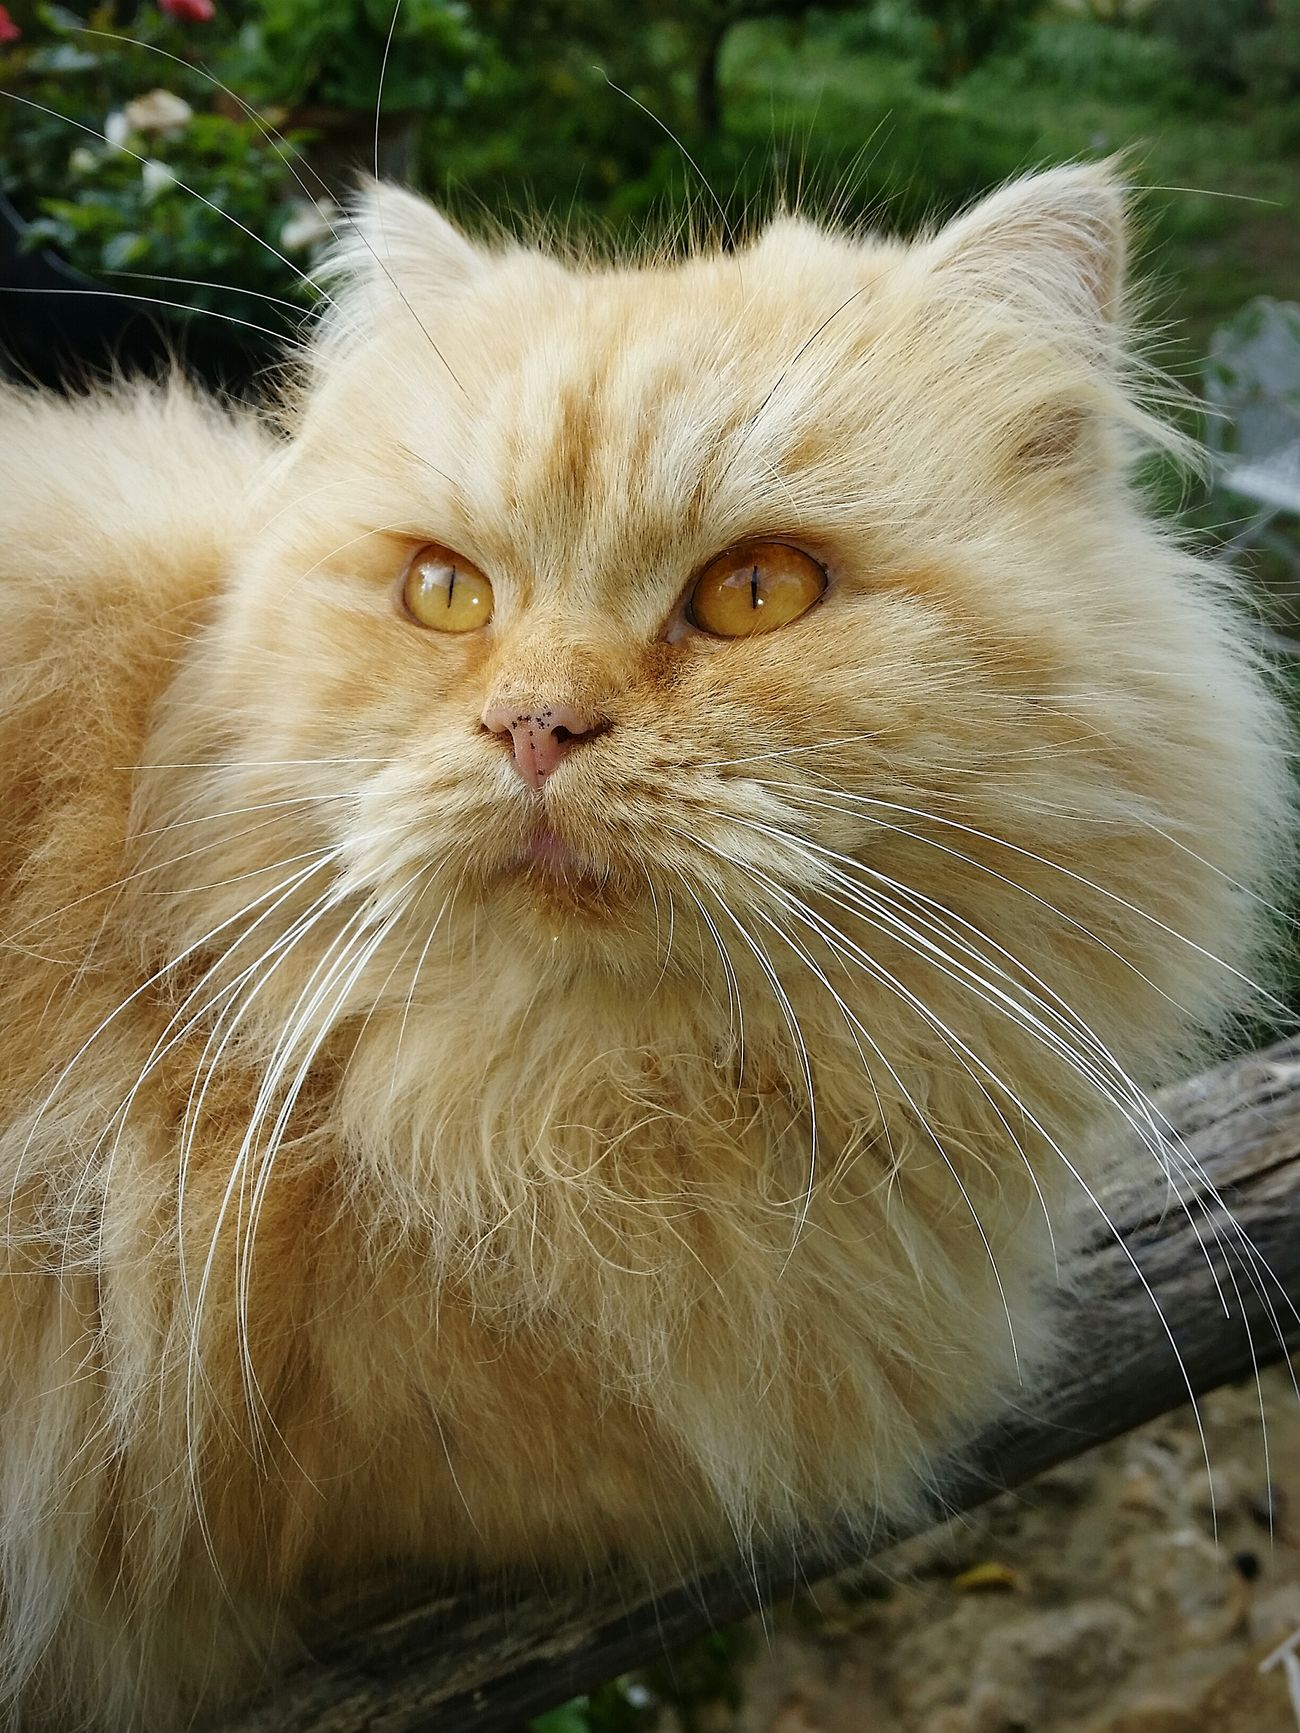 Cat Felinos Sicily Italy Gatto Hair Muzzlegang Orange